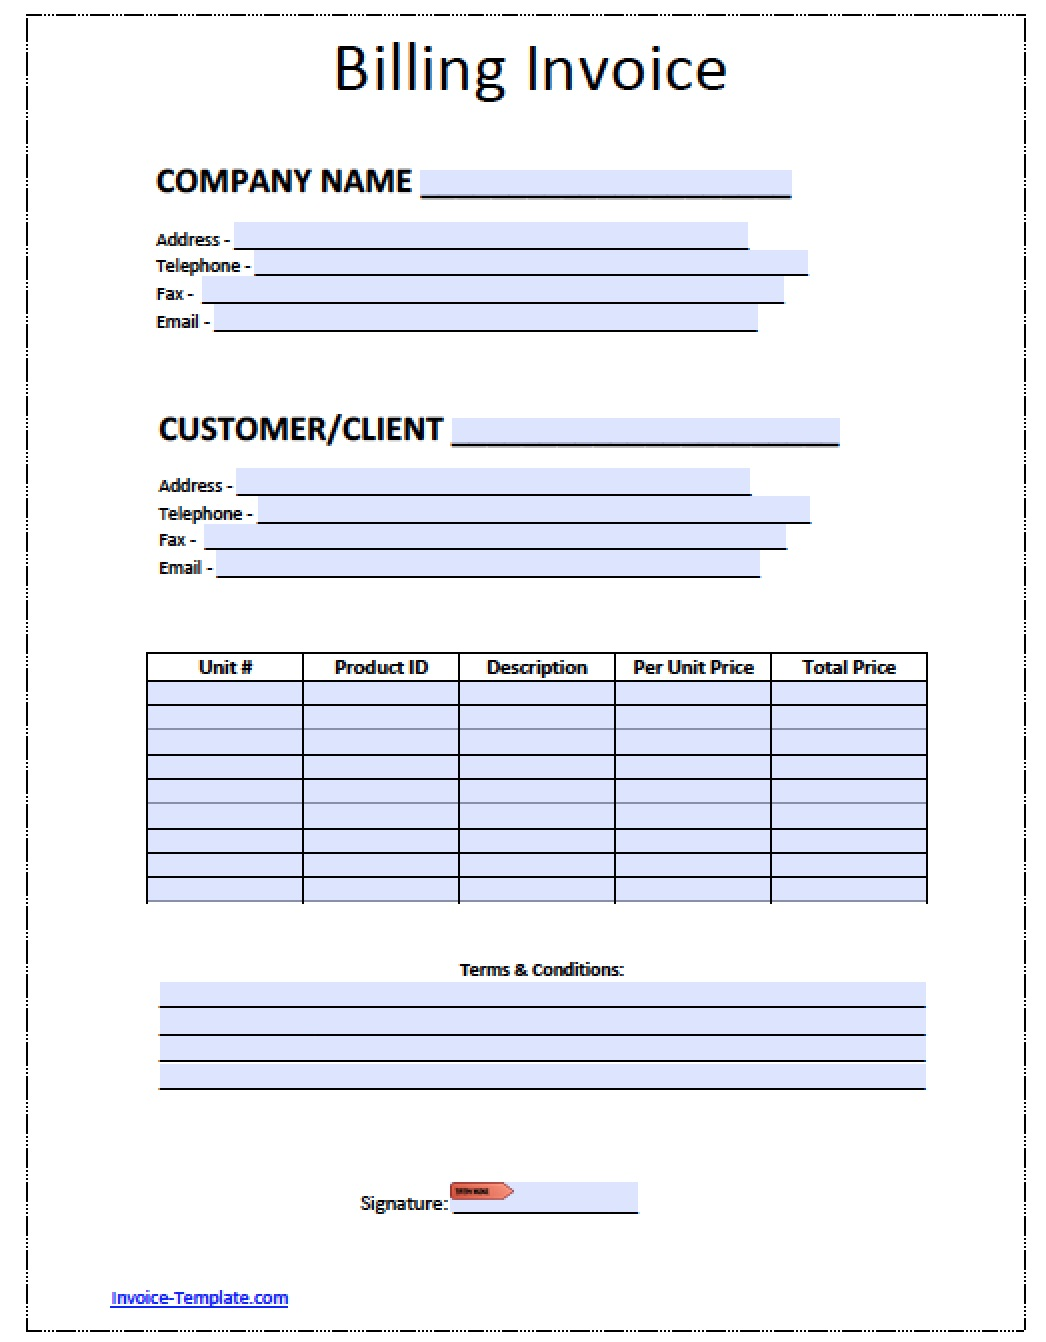 Centralasianshepherdus  Pretty Billing Invoice Invoices Faq U Cloudflare Support Billing  With Great Free Billing Invoice Template  Excel  Pdf  Word Doc  Billing With Astonishing Pay By Phone Receipt Also Acknowledge Of Receipt In Addition Rent Receipt Template Doc And Olive Garden Receipt As Well As Rental Receipt Format Additionally Acknowledgement Of Receipt Letter From Happytomco With Centralasianshepherdus  Great Billing Invoice Invoices Faq U Cloudflare Support Billing  With Astonishing Free Billing Invoice Template  Excel  Pdf  Word Doc  Billing And Pretty Pay By Phone Receipt Also Acknowledge Of Receipt In Addition Rent Receipt Template Doc From Happytomco